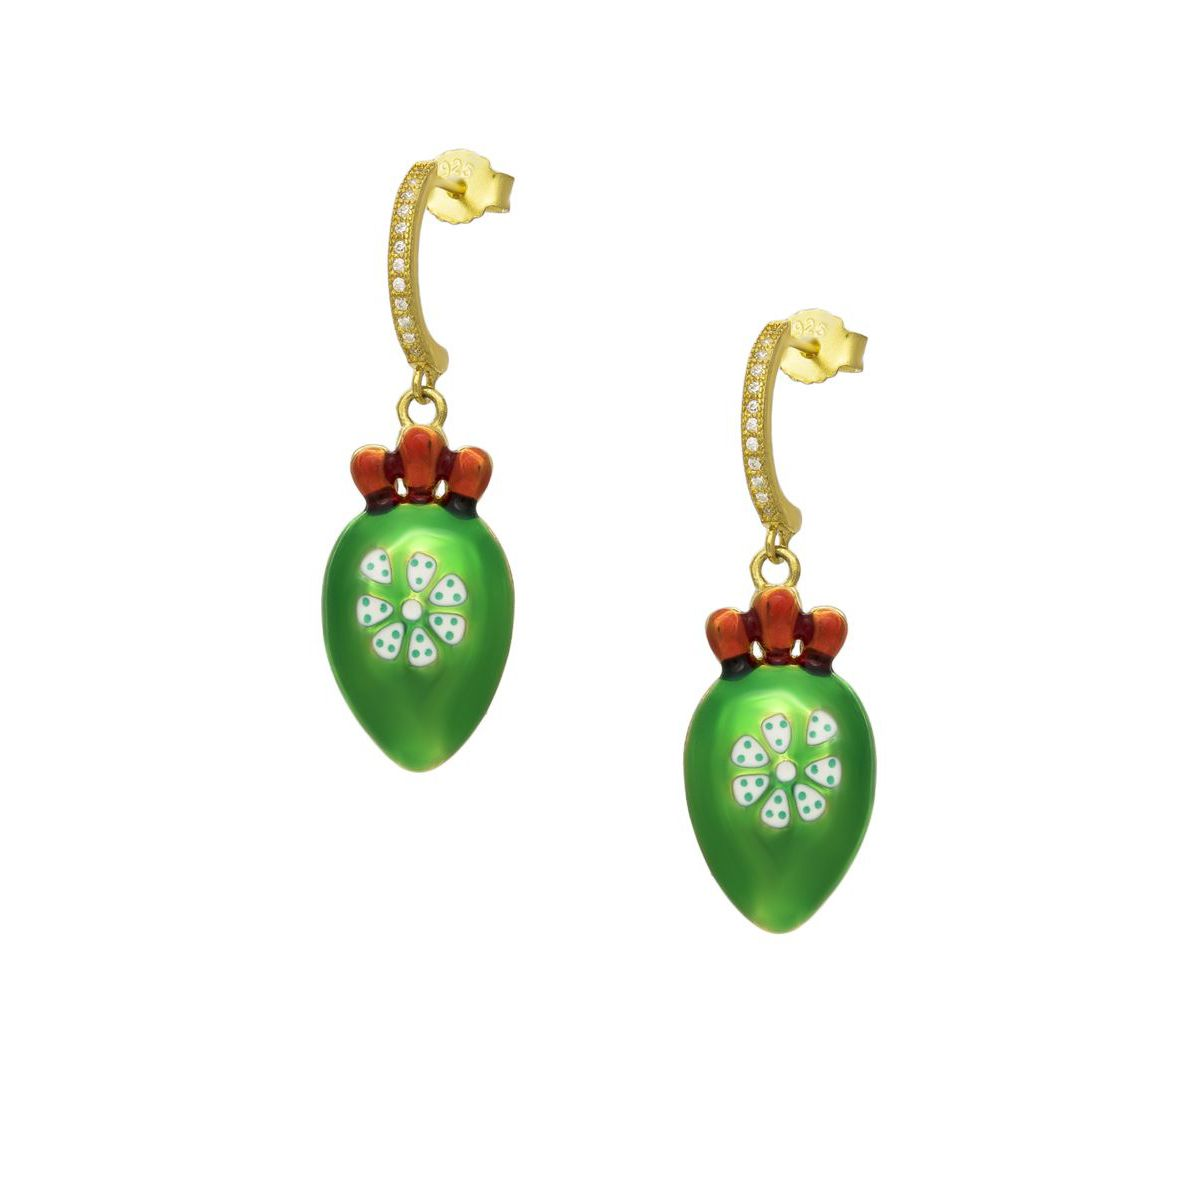 PRICKLY PEAR GOLD EARRINGS Green M'AMI SICILY JEWELS